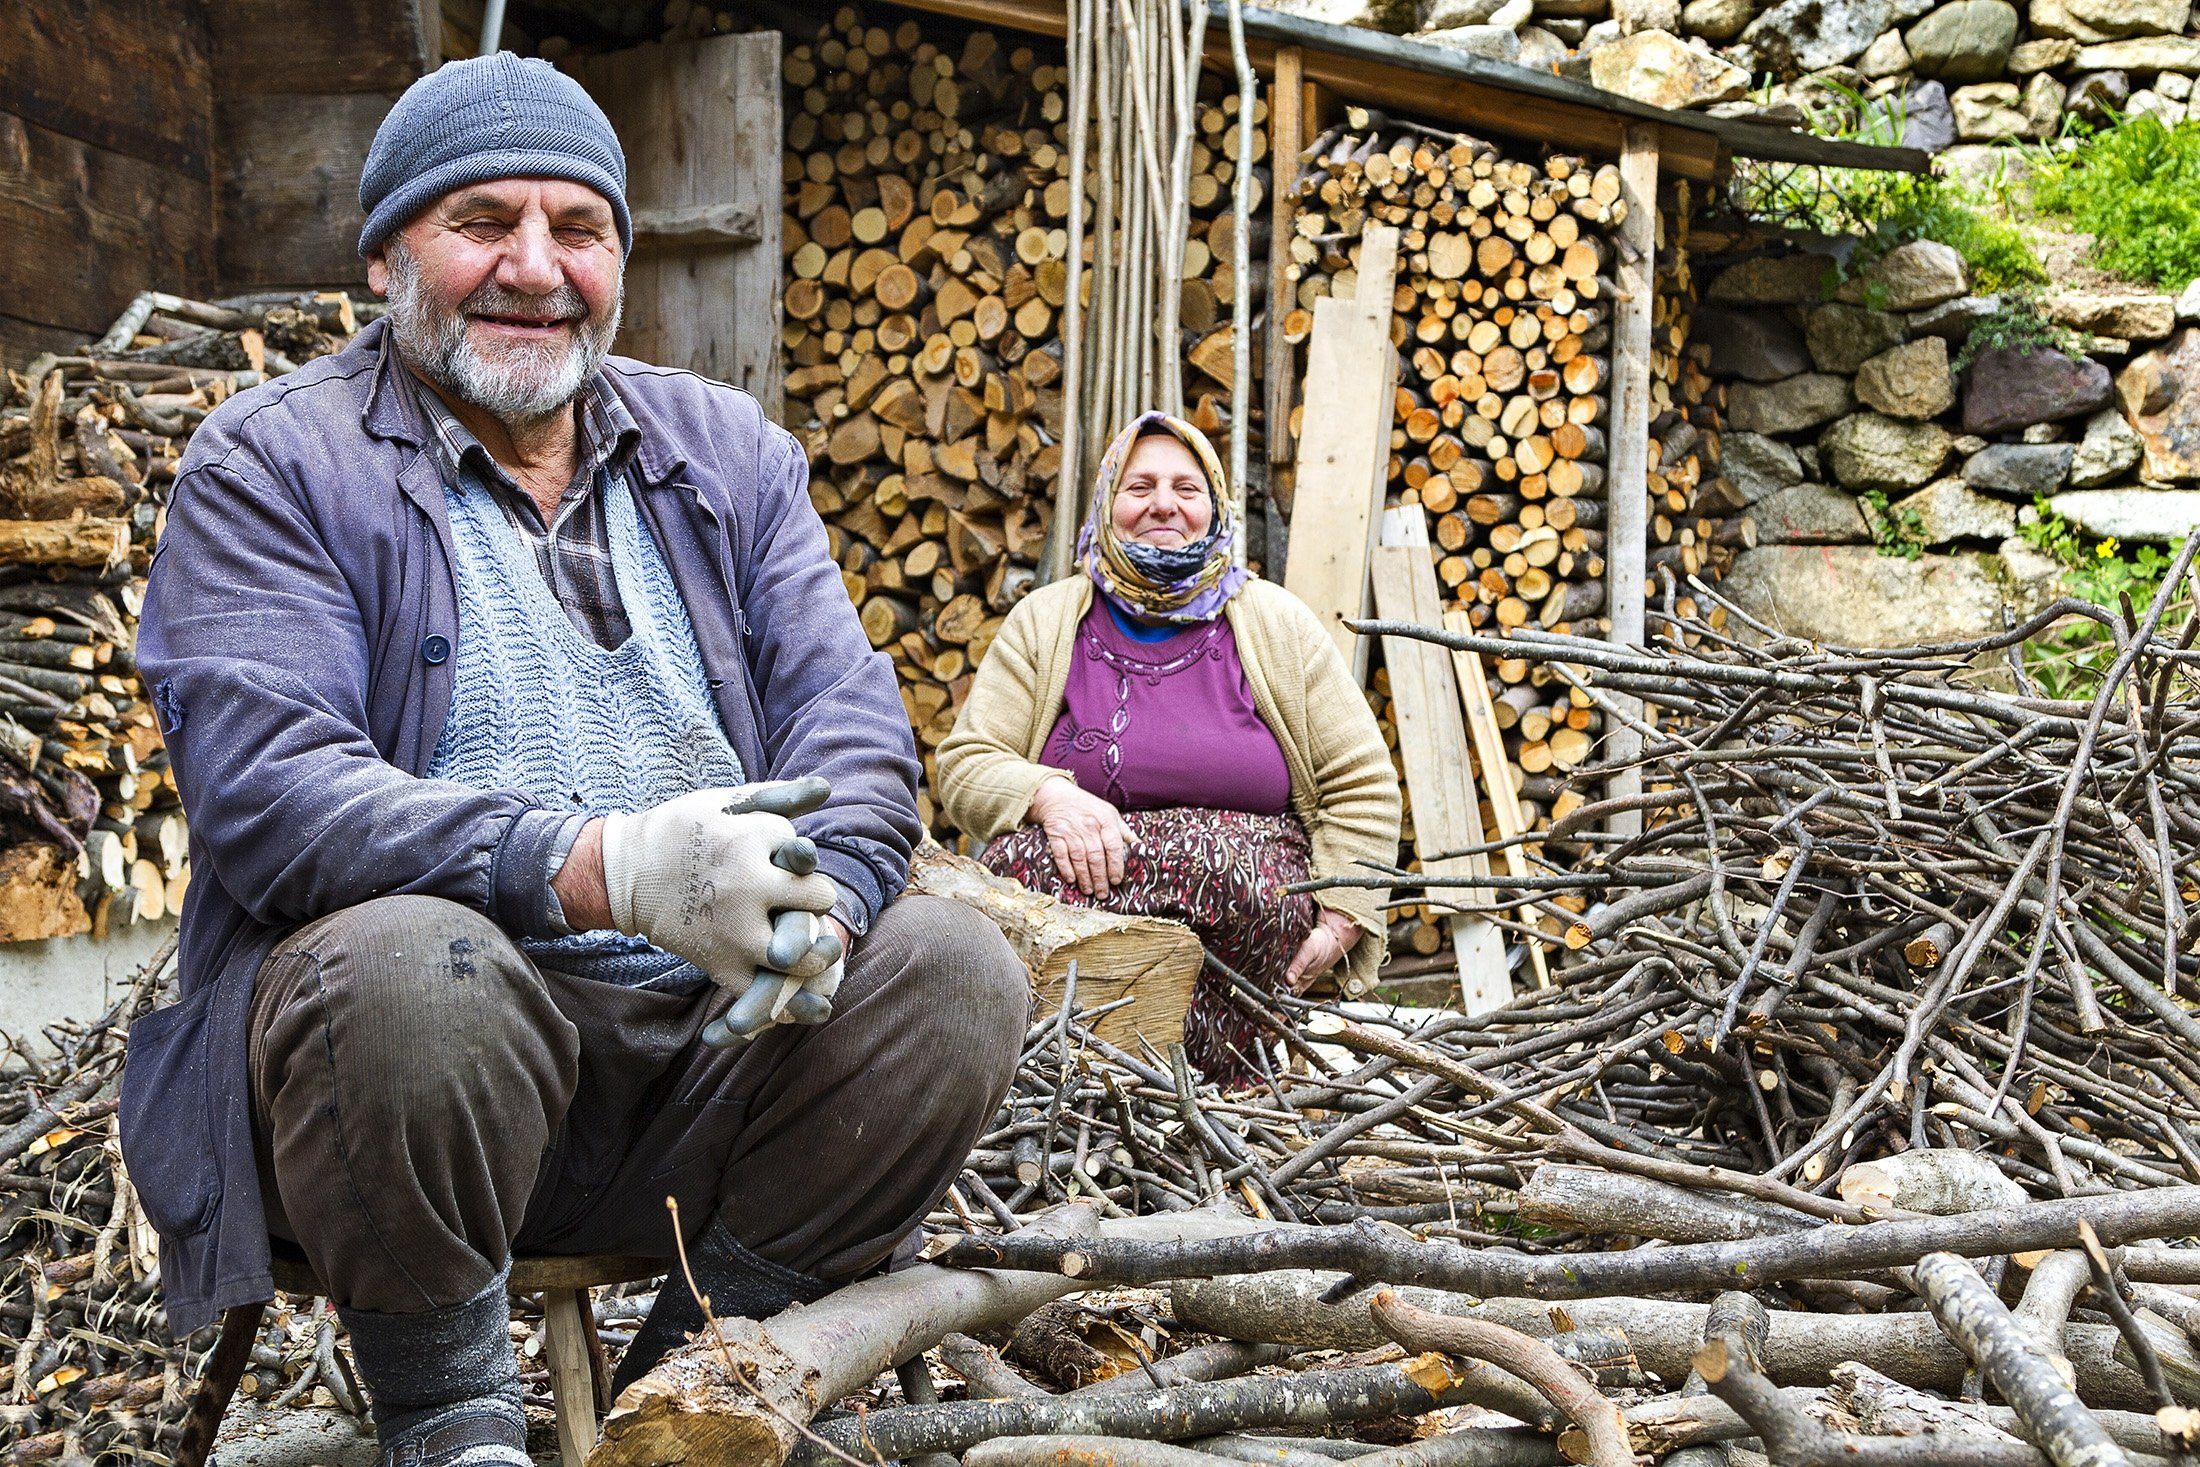 An elderly Turkish couple smiles at the camera while chopping firewood in Trabzon, Turkey,  April 2, 2014. (Shutterstock Photo)